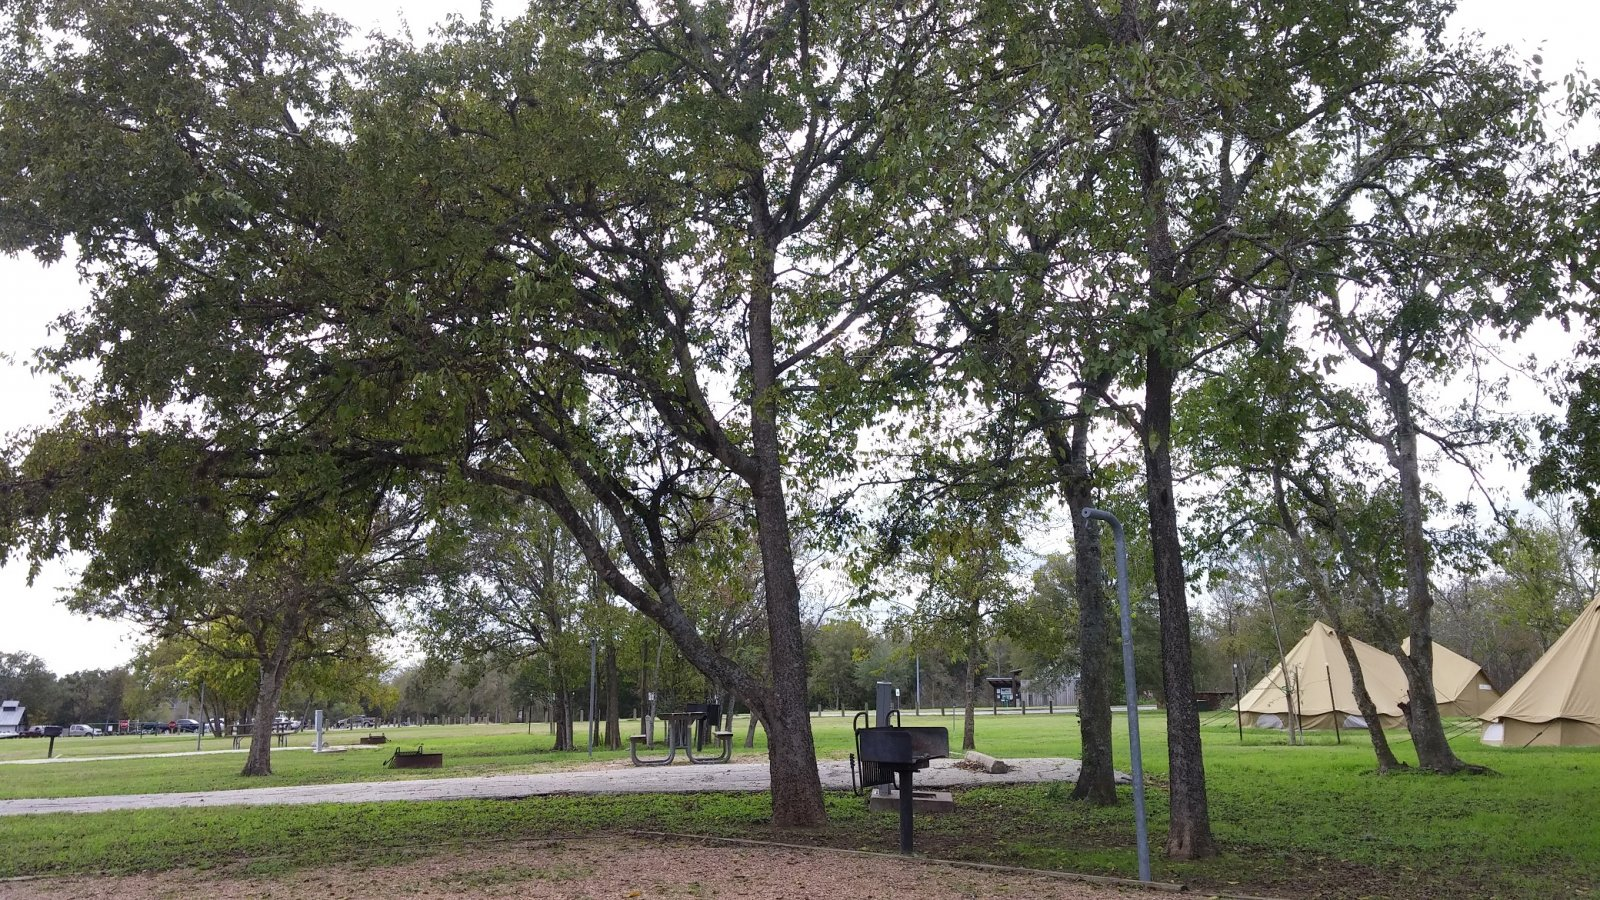 Click image for larger version  Name:LCRA Park 1.jpg Views:114 Size:586.4 KB ID:252946